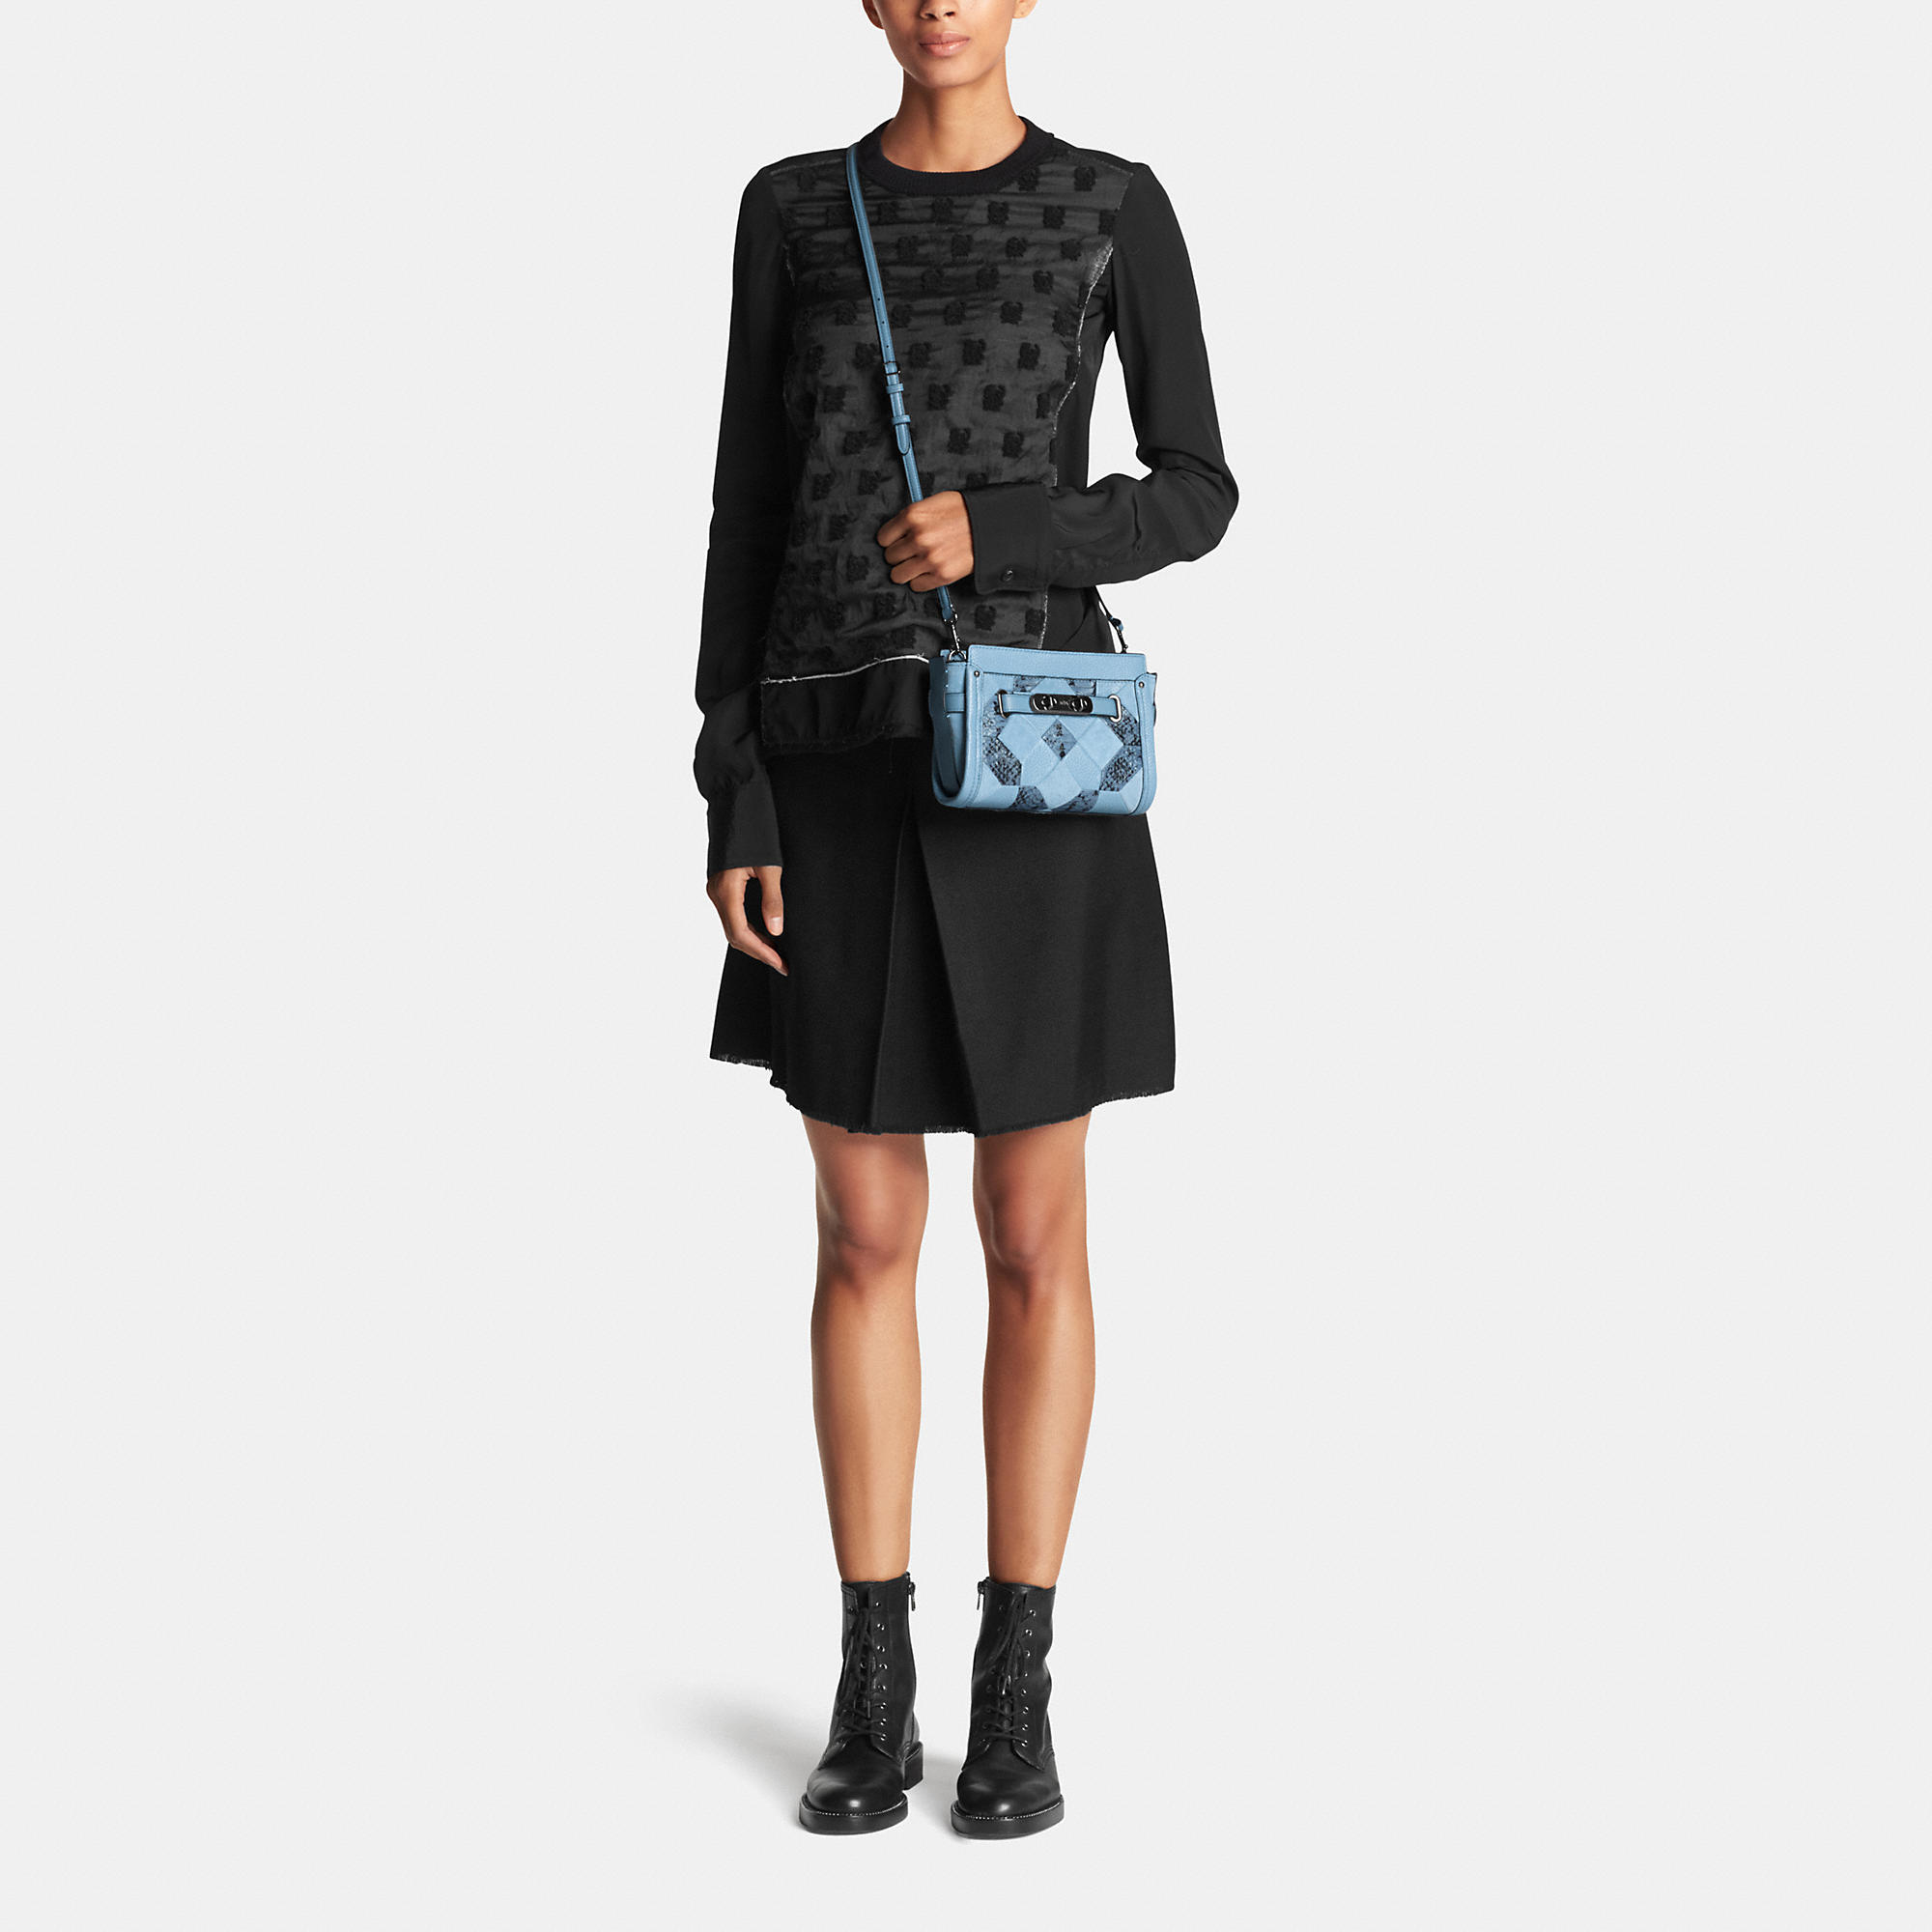 717fa1dcfe2 Lyst - COACH Swagger Wristlet In Patchwork Exotic Embossed Leather ...